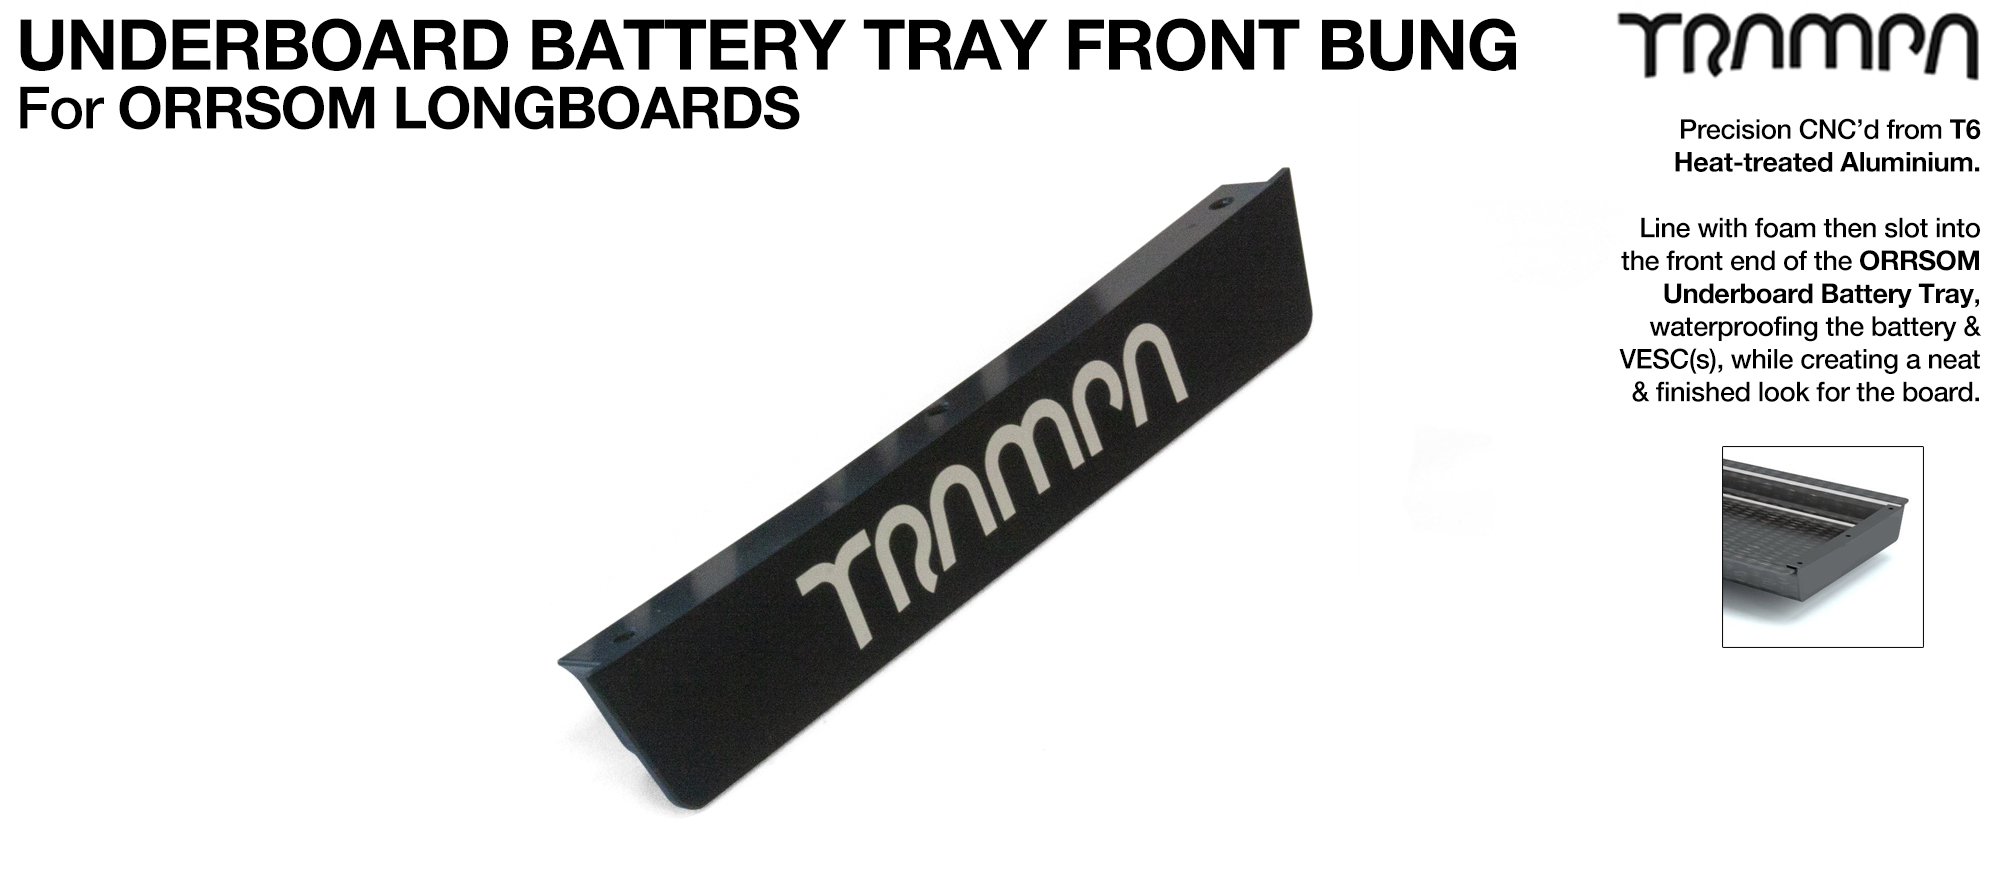 Yes please supply me with Aluminum Battery Bungs & Rubbers (+£50)